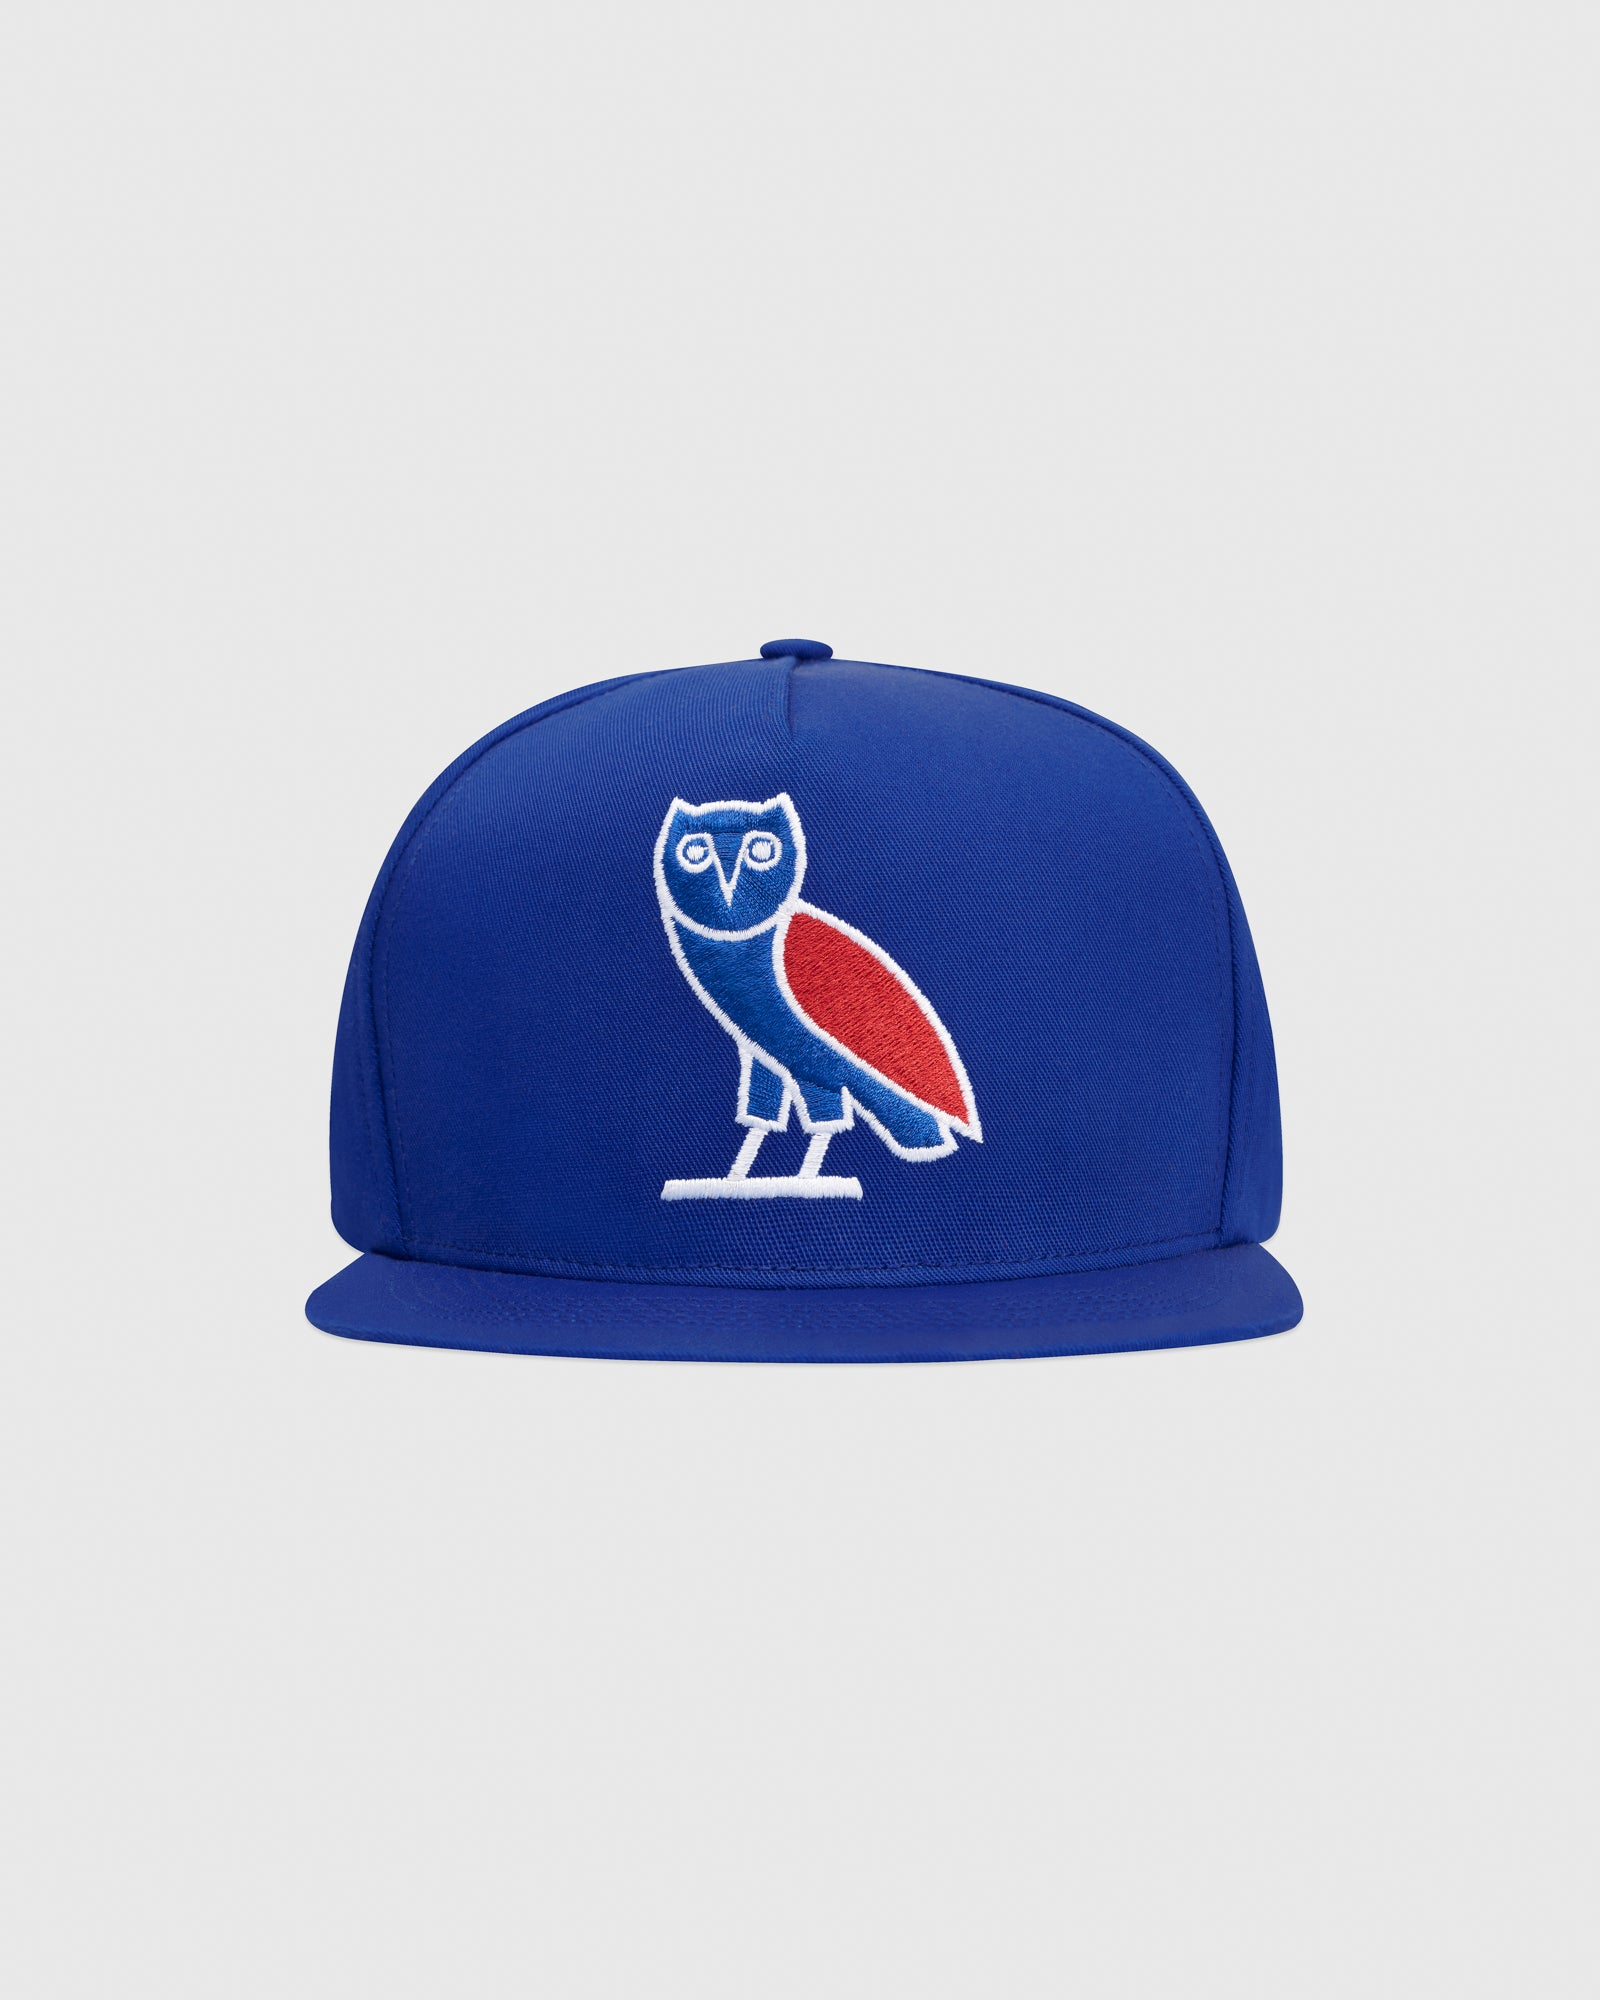 OVO FRANCHISE SNAPBACK - ROYAL BLUE IMAGE #1